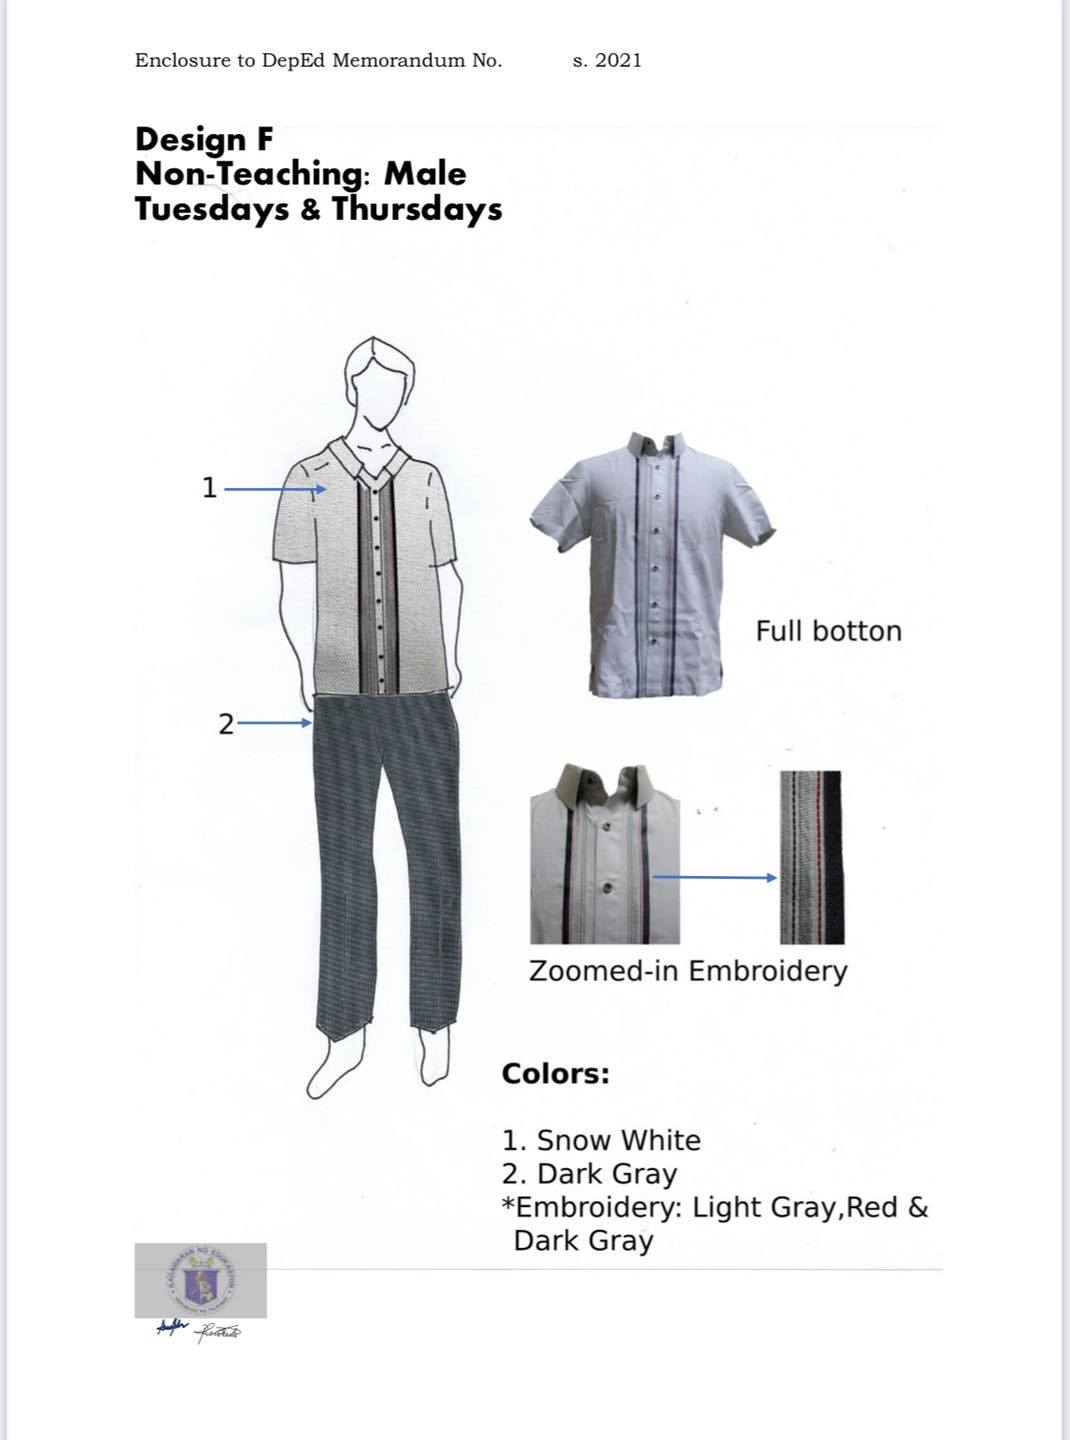 DepEd National Uniform Design F for Male Non-Teaching Personnel (Tuesdays and Thursdays)